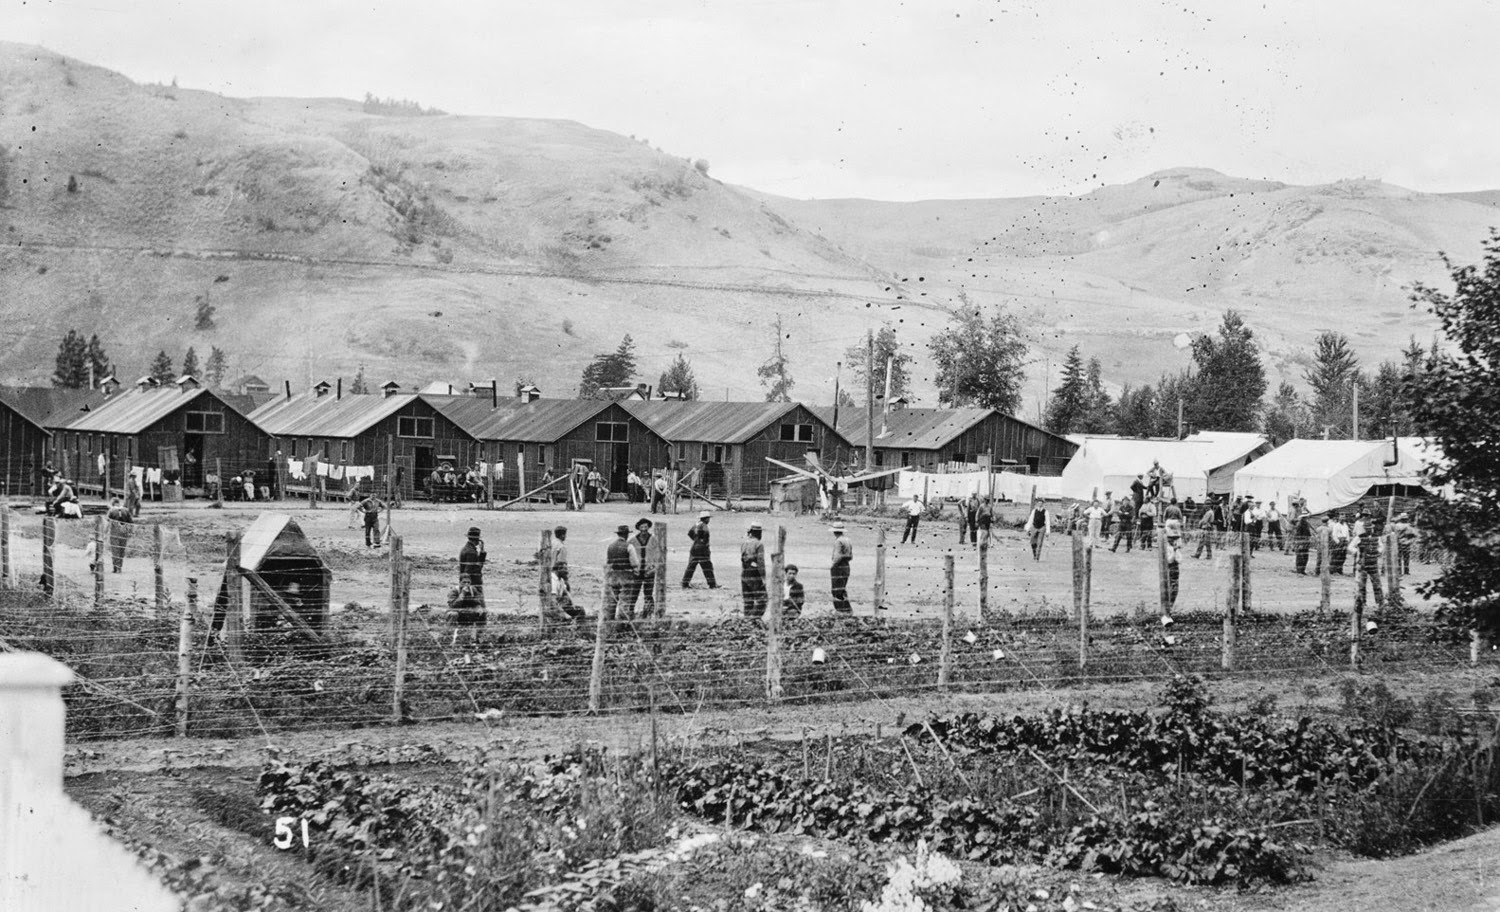 The Internment Camps of Japanese Canadians In Canada During World War II